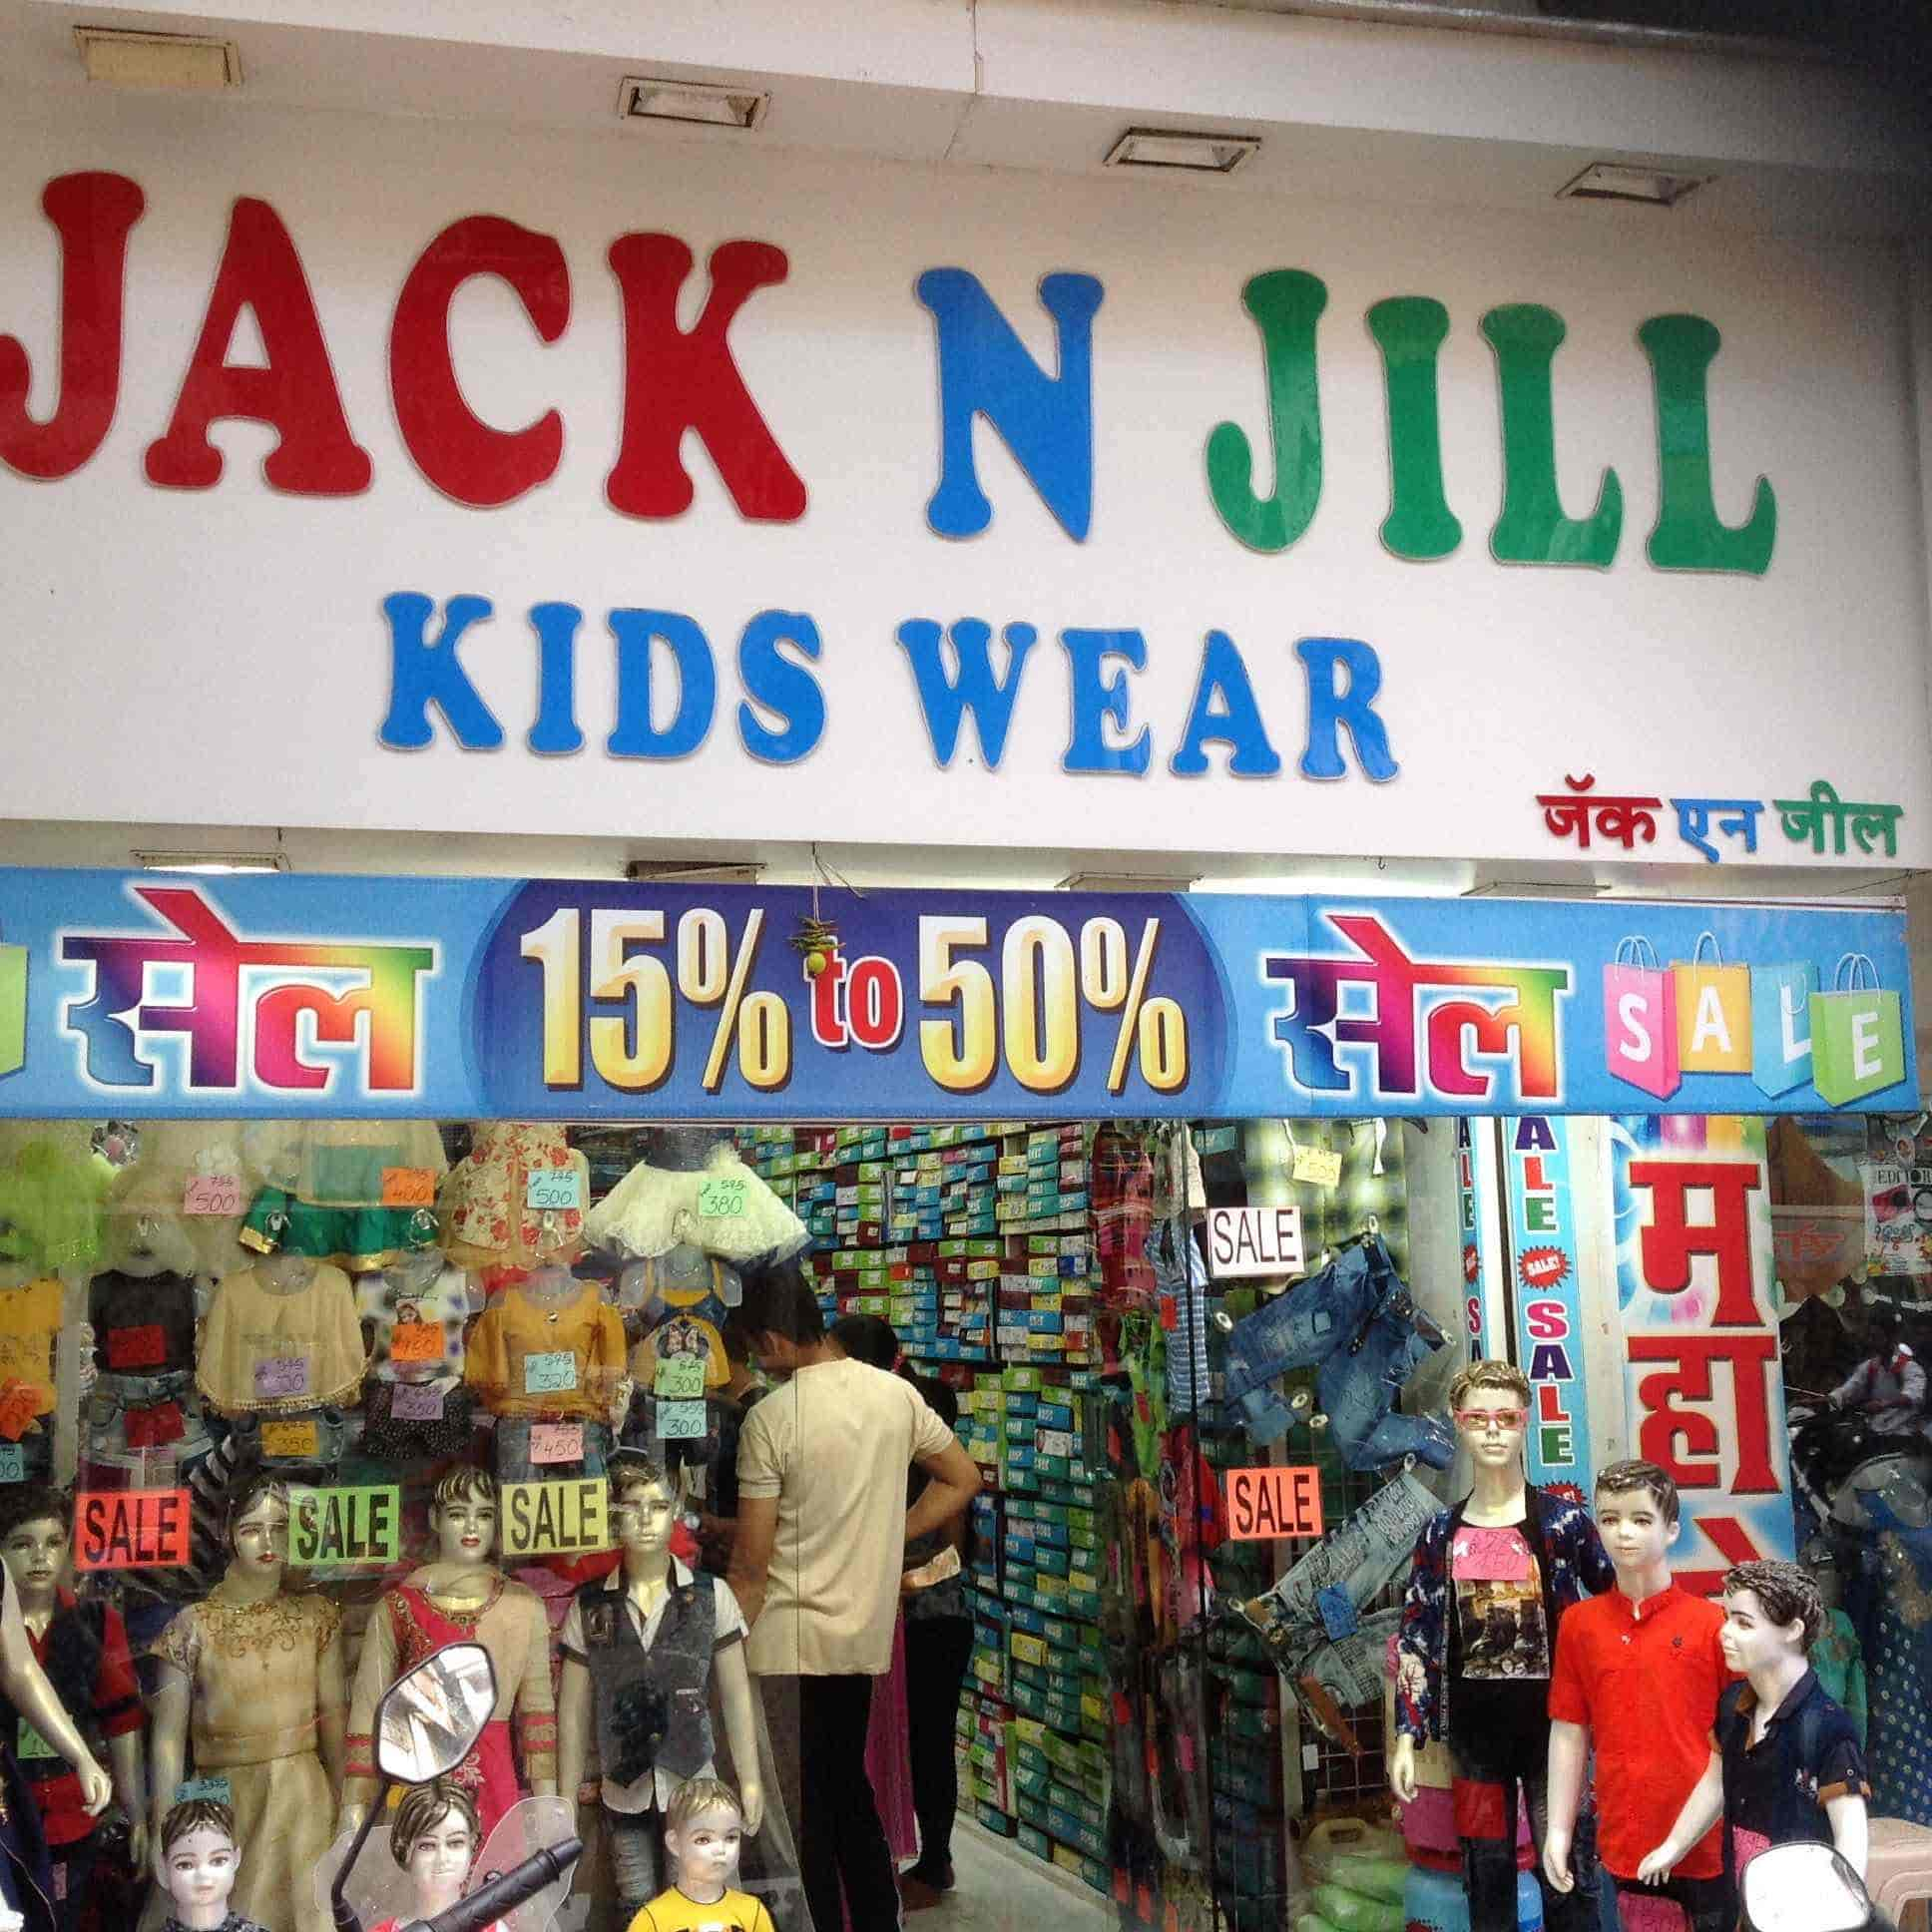 b7ba3c32 Jack N Jill Kids Wear, Bhiwandi - Children Readymade Garment Retailers in  Thane, Mumbai - Justdial